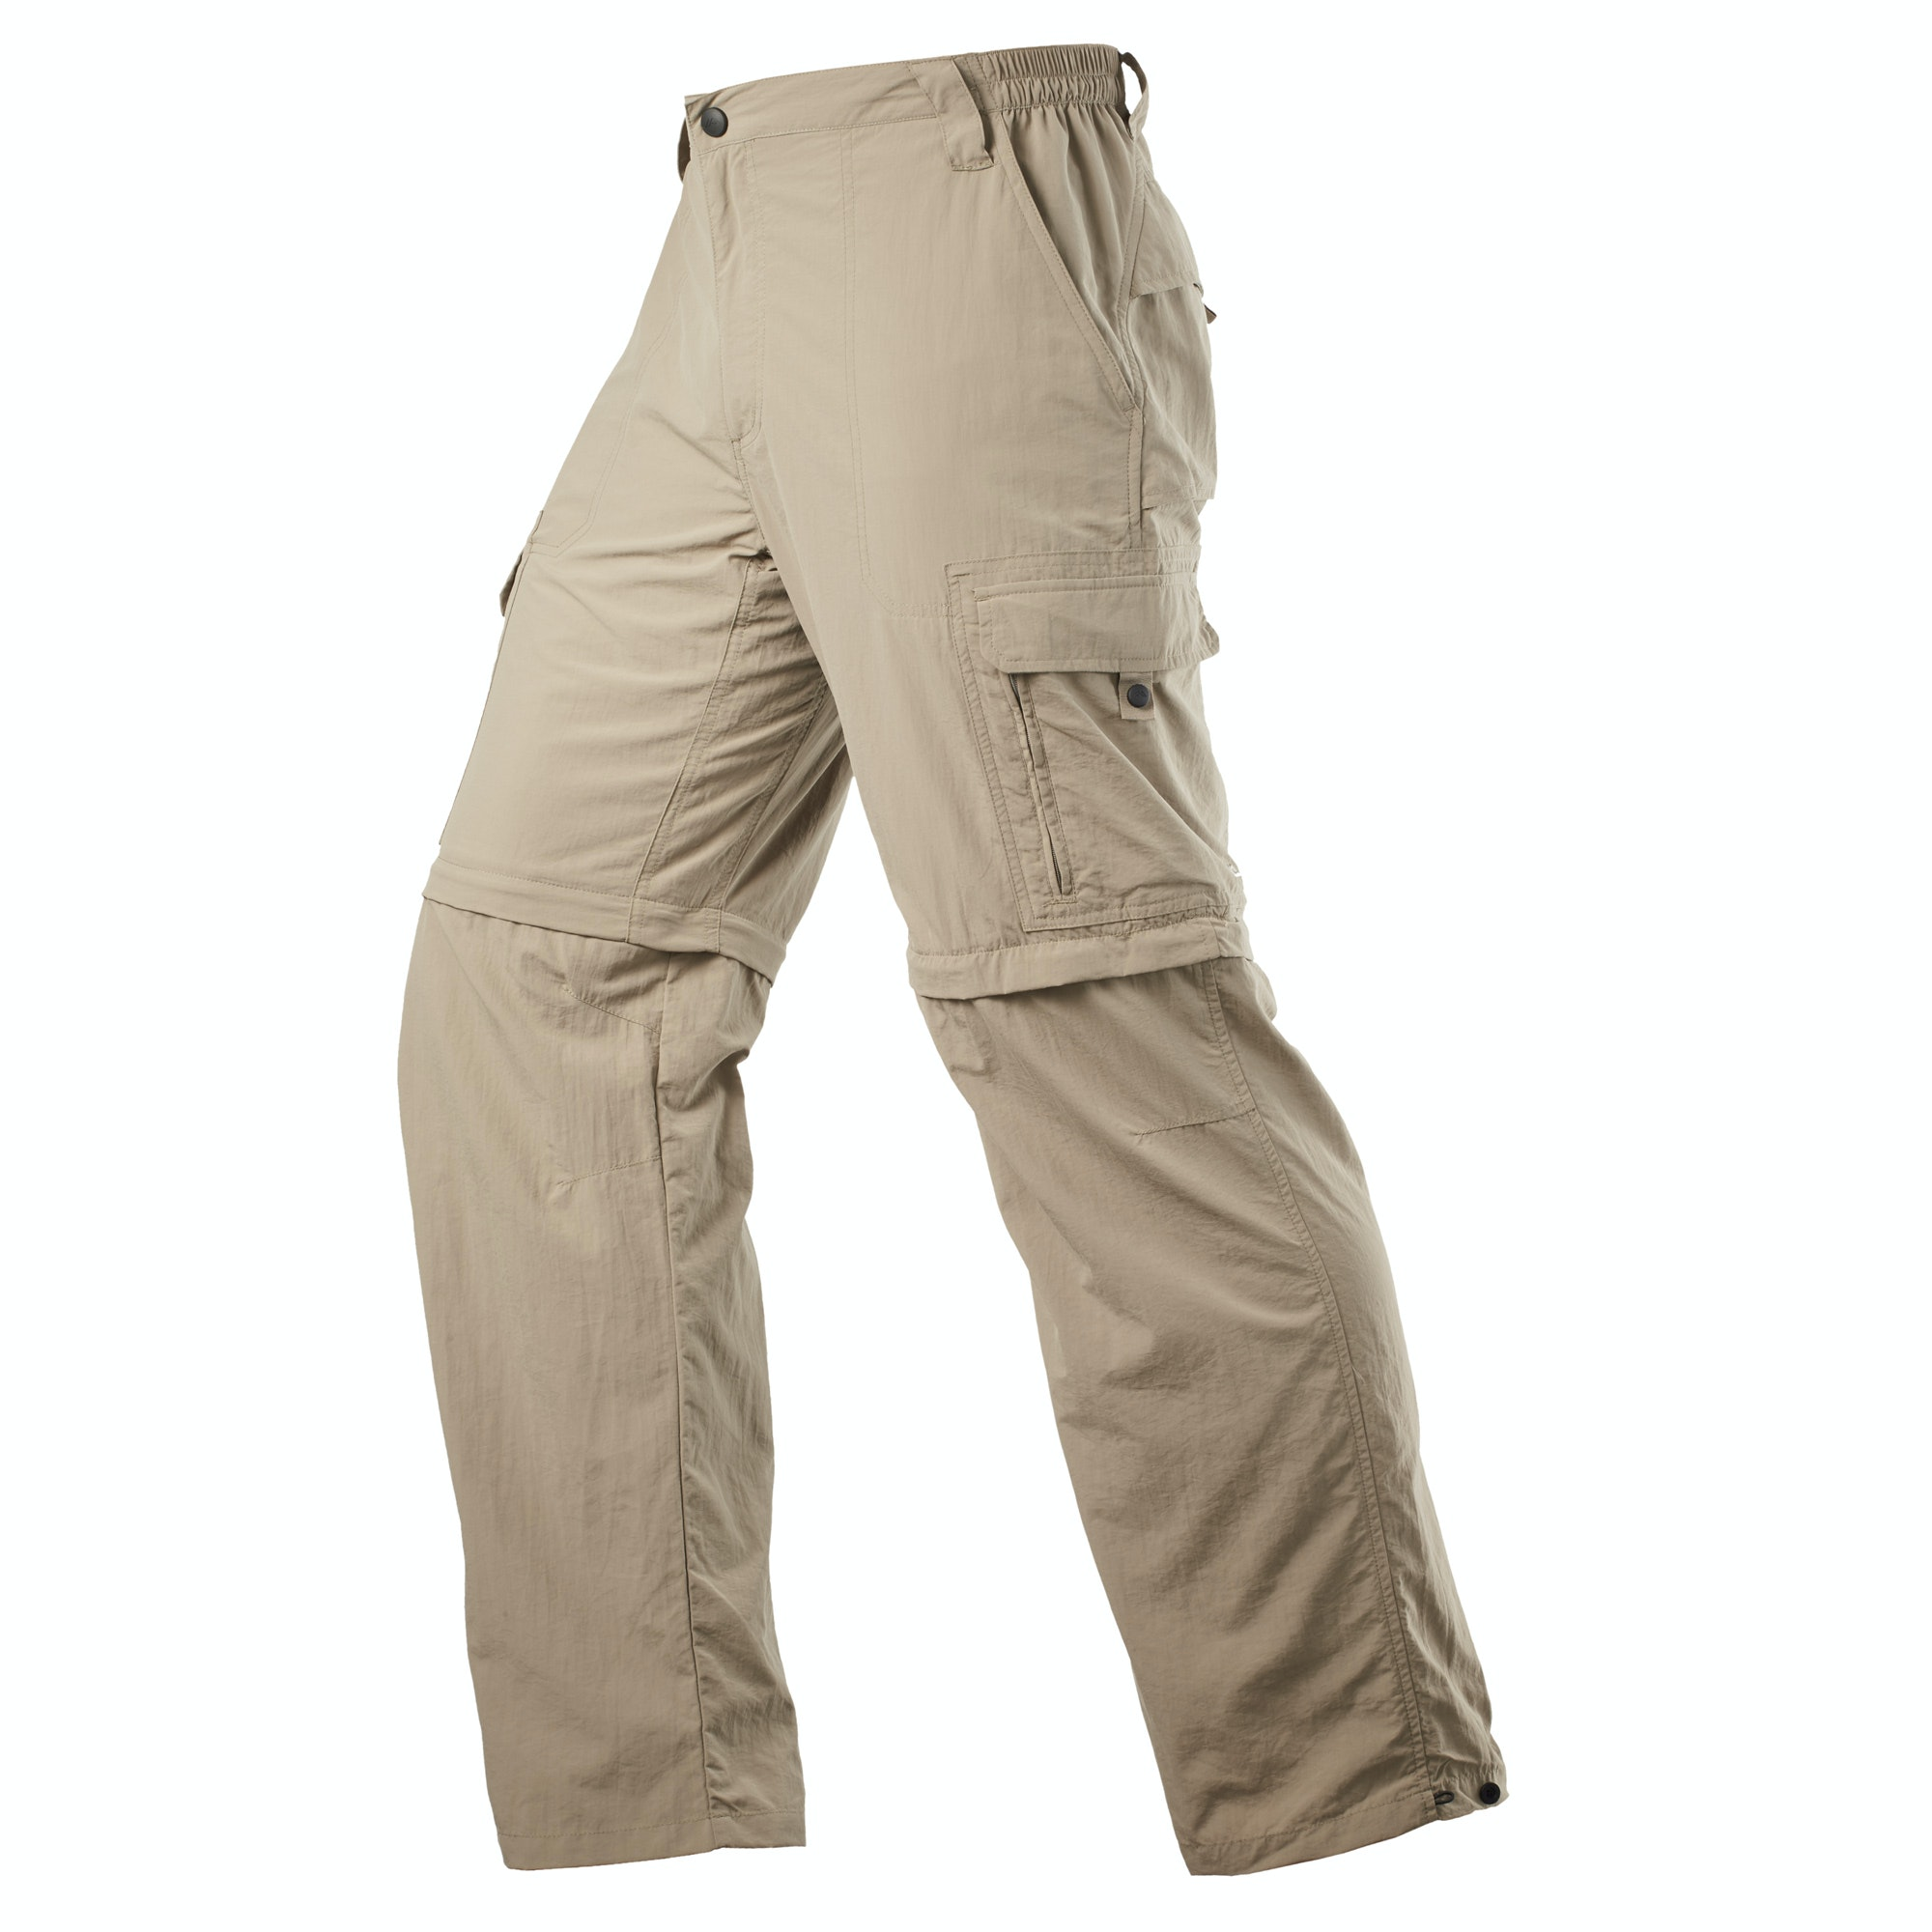 Shop womens side zip pants at Neiman Marcus, where you will find free shipping on the latest in fashion from top designers.